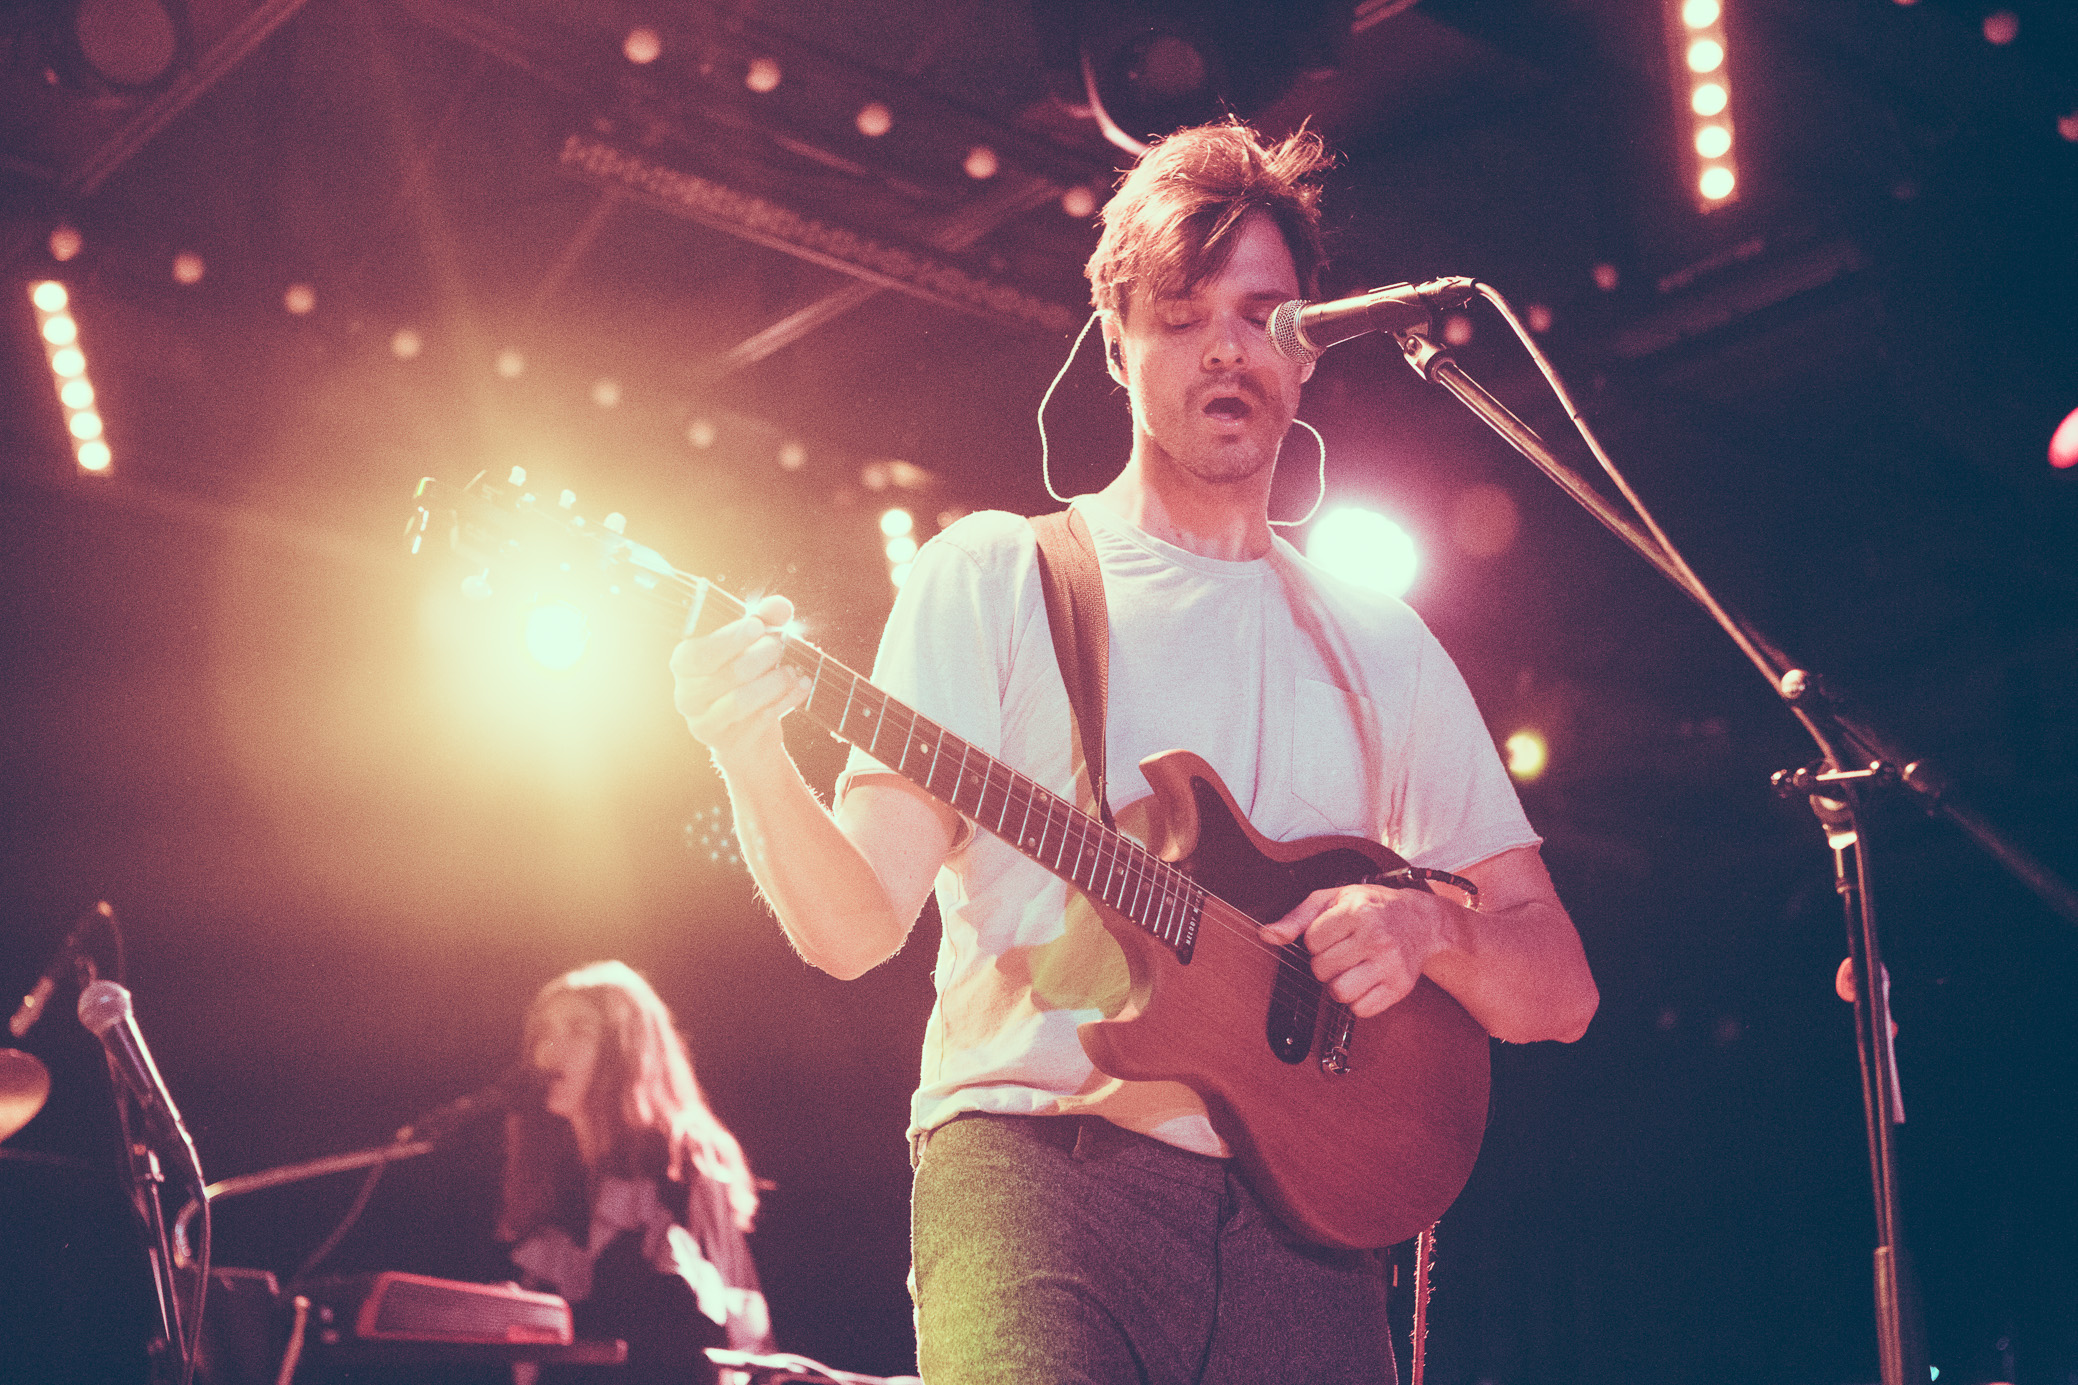 David Longstreth of Dirty Projectors performs in concert at Saturn Birmingham in Birmingham, Alabama on May 18th, 2018. (Photo by David A. Smith/DSmithScenes)